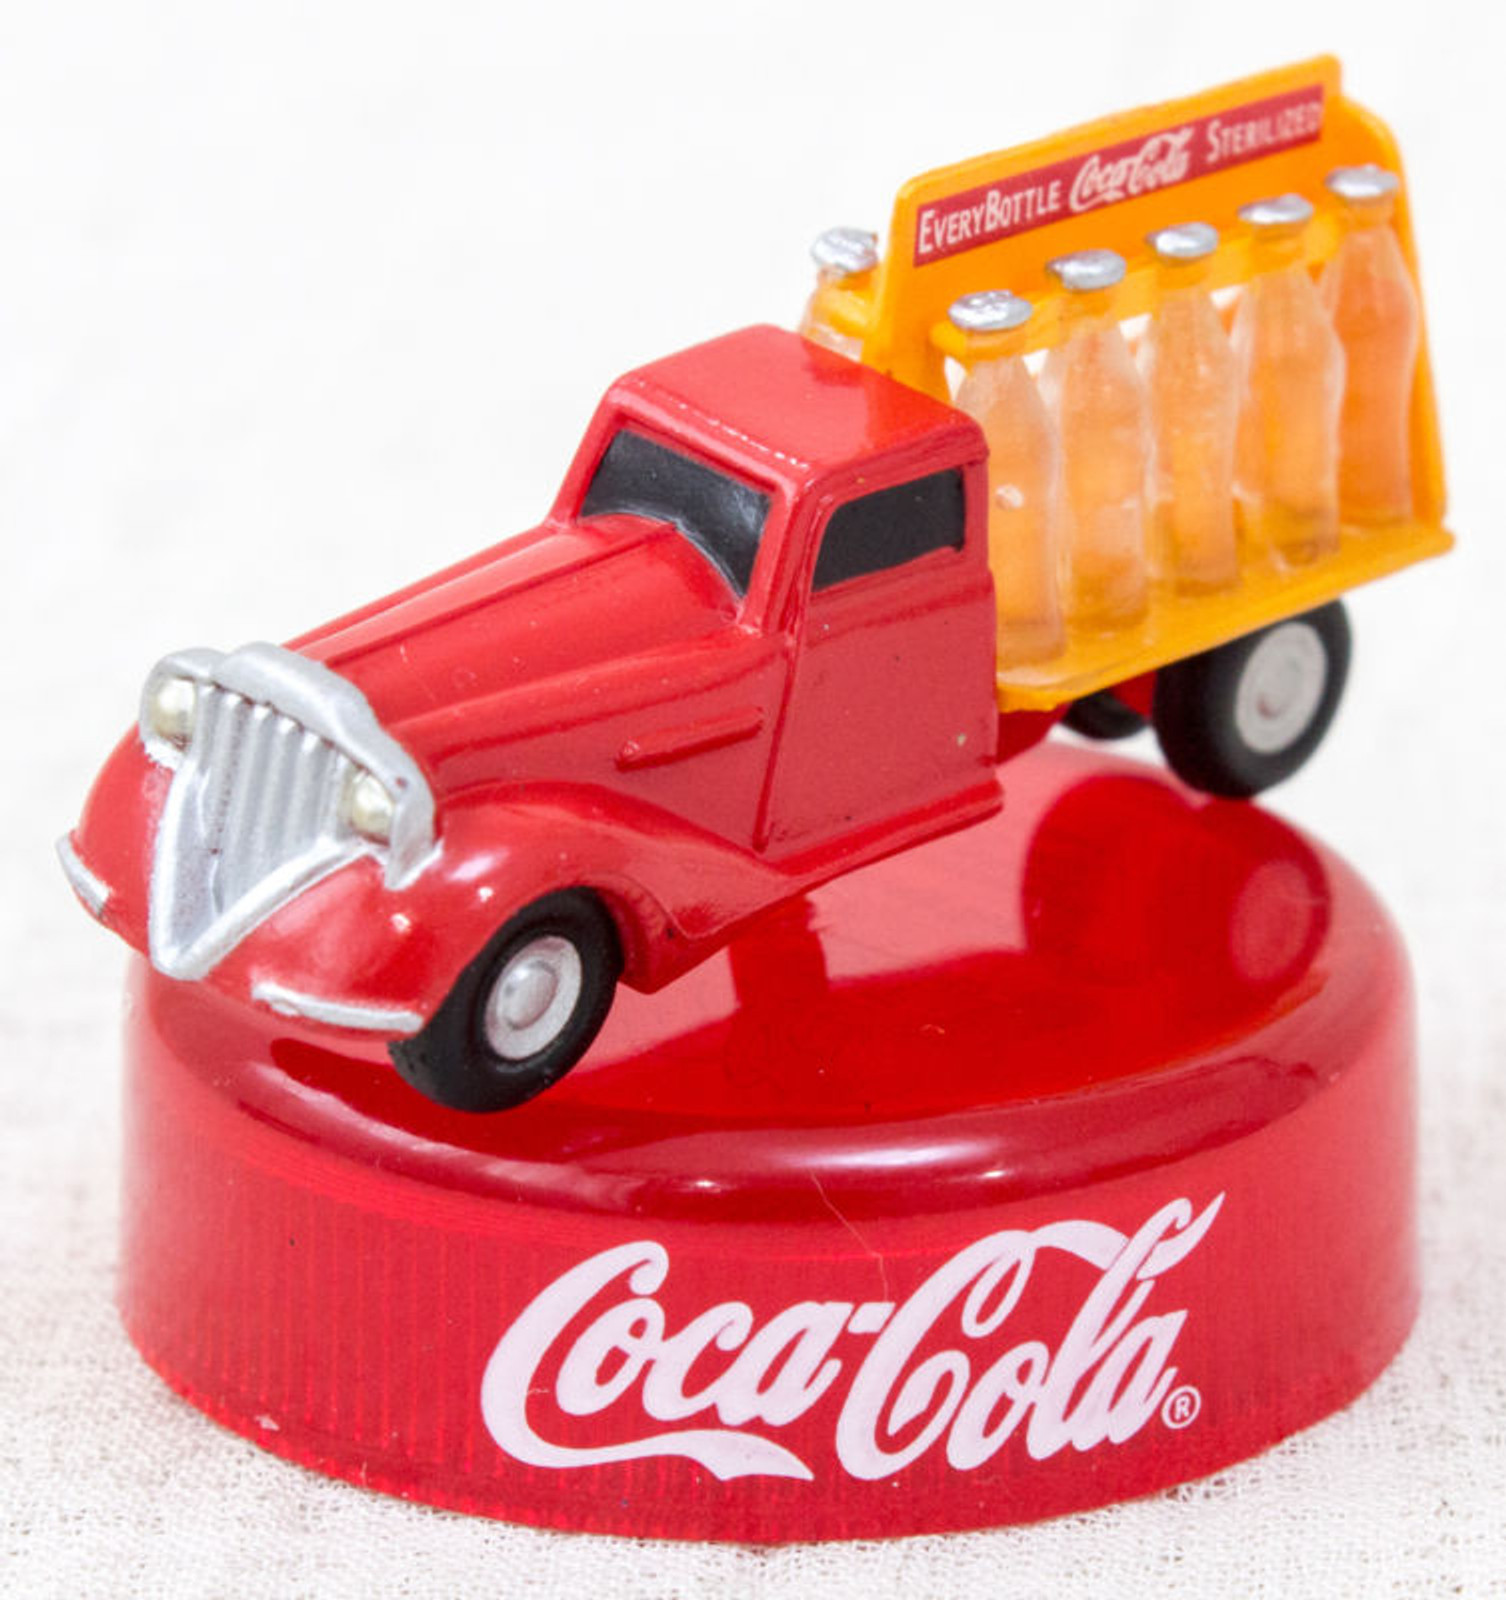 Coca-Cola Graffiti Delivery Truck Toy Miniature Figure Kaiyodo JAPAN